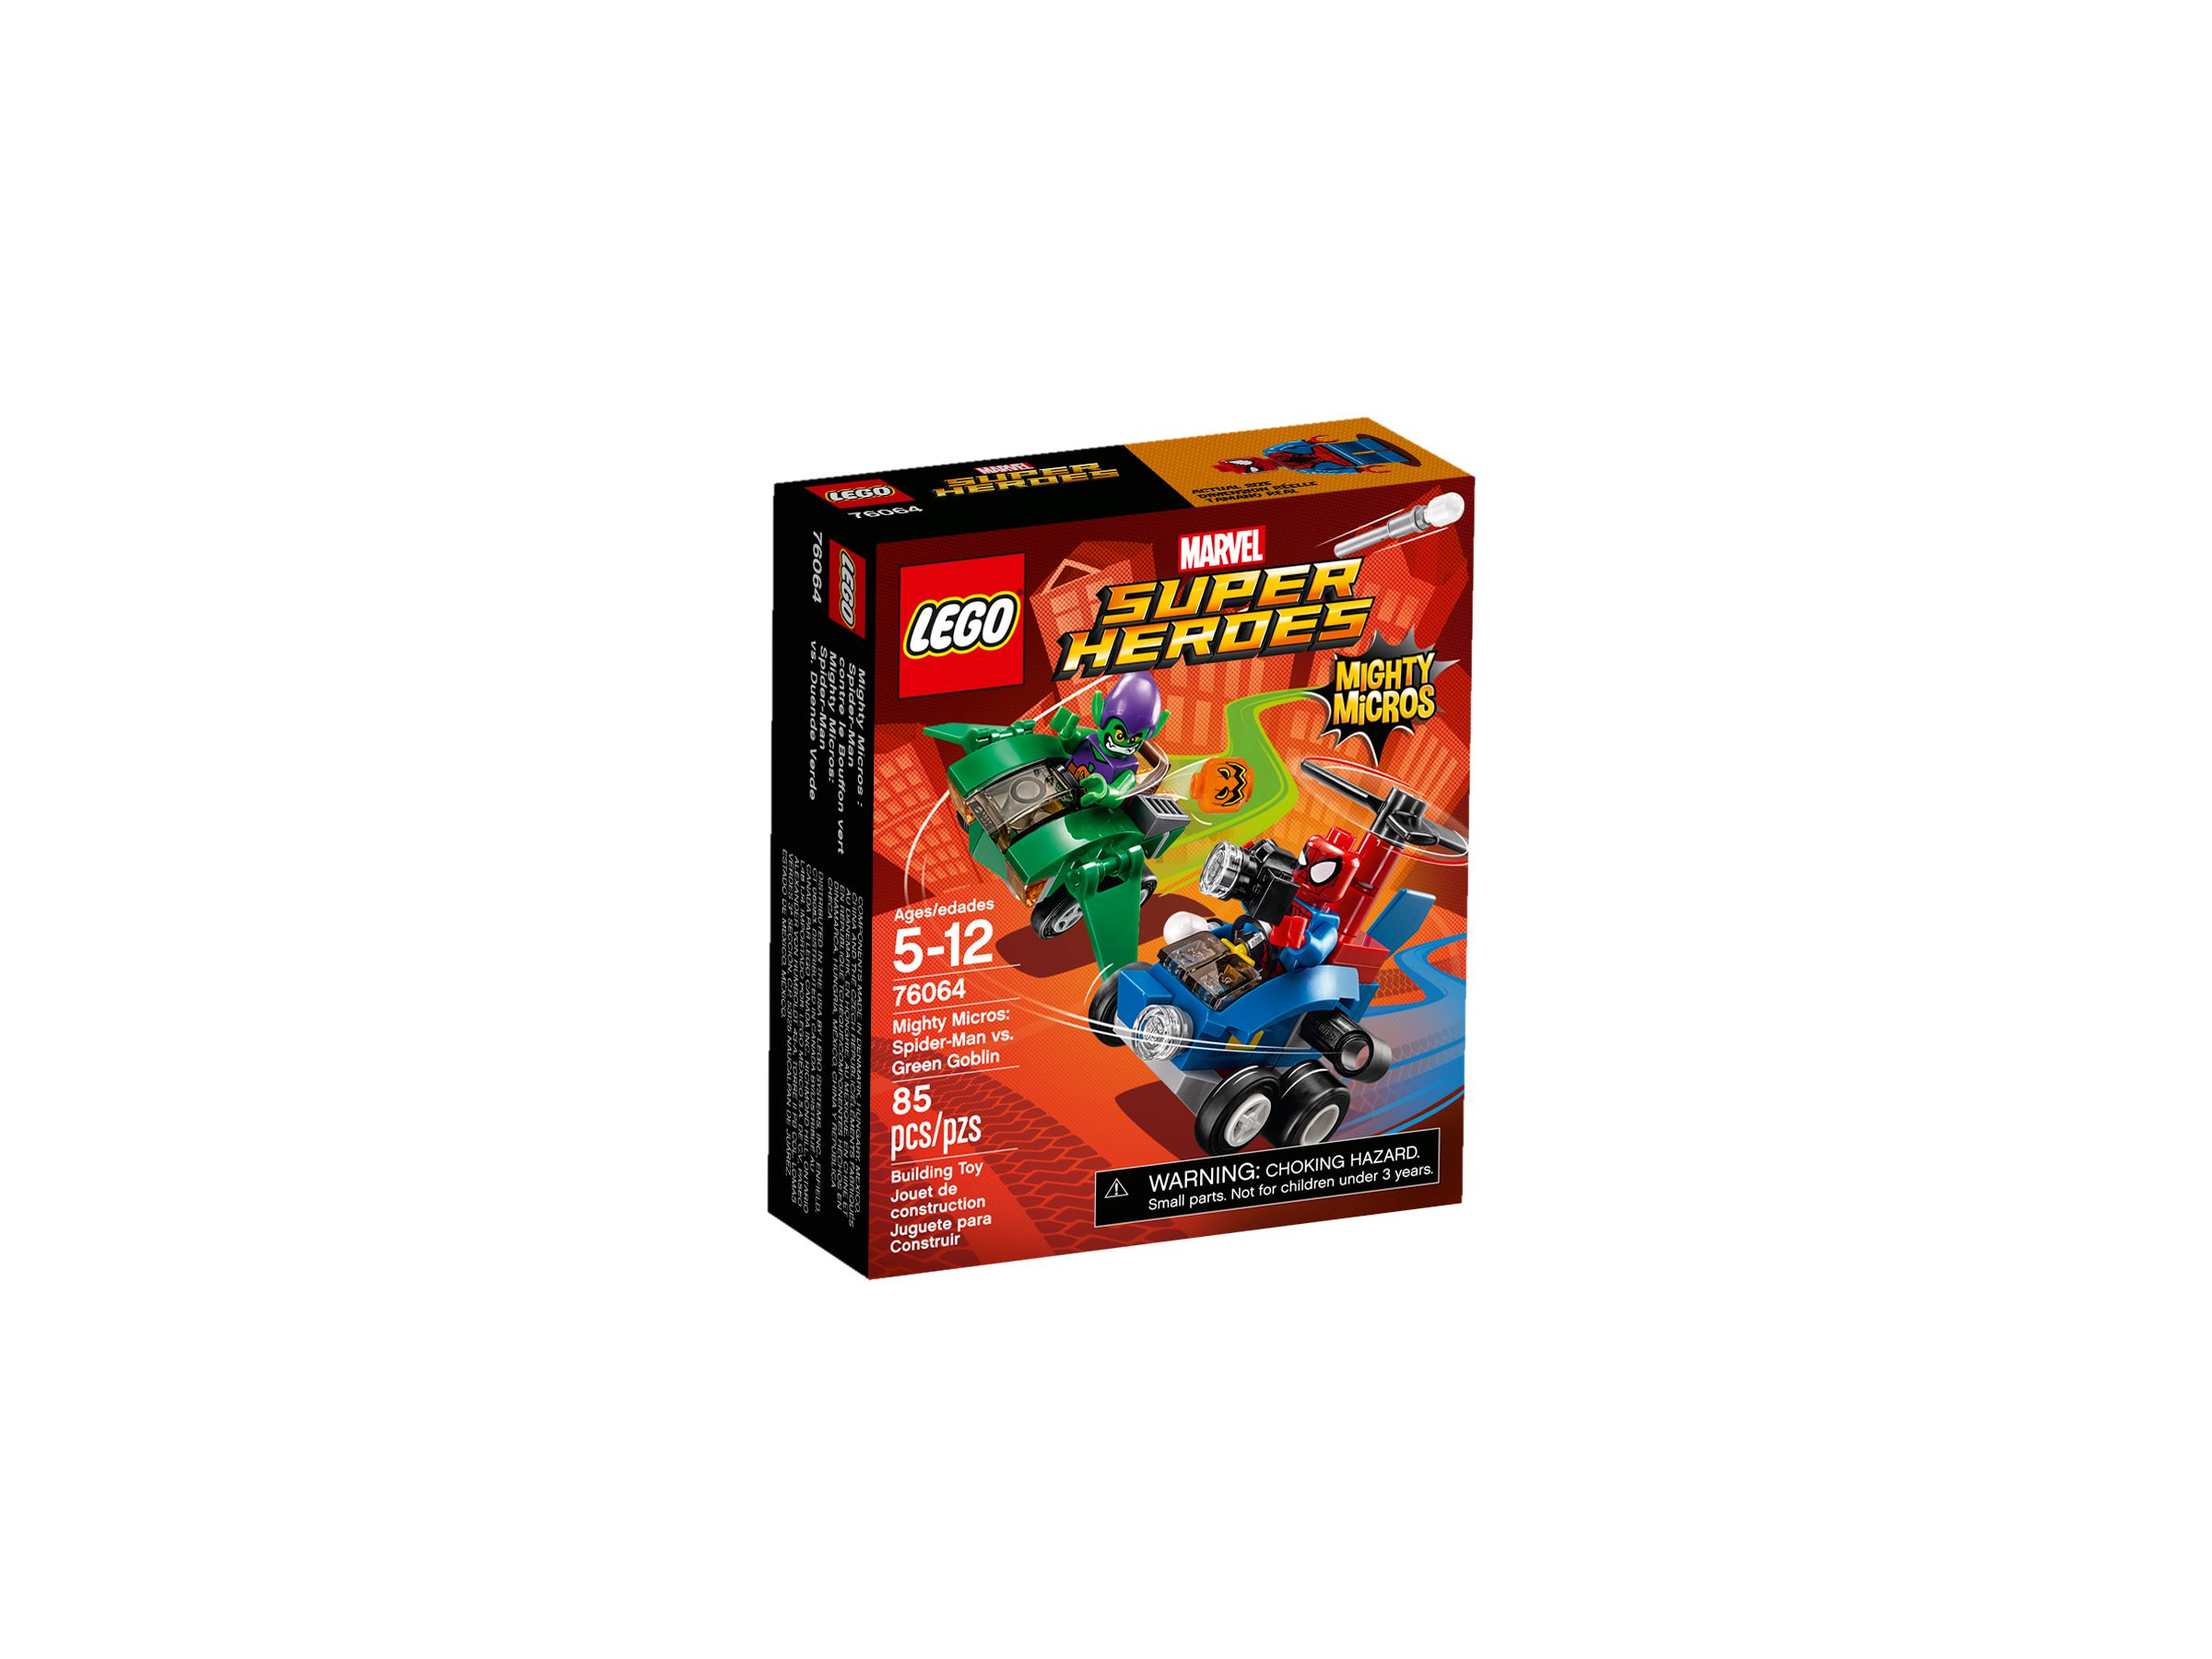 LEGO Super Heroes 76064 Mighty Micros: Spider-Man vs. Green Goblin LEGO_76064_alt1.jpg